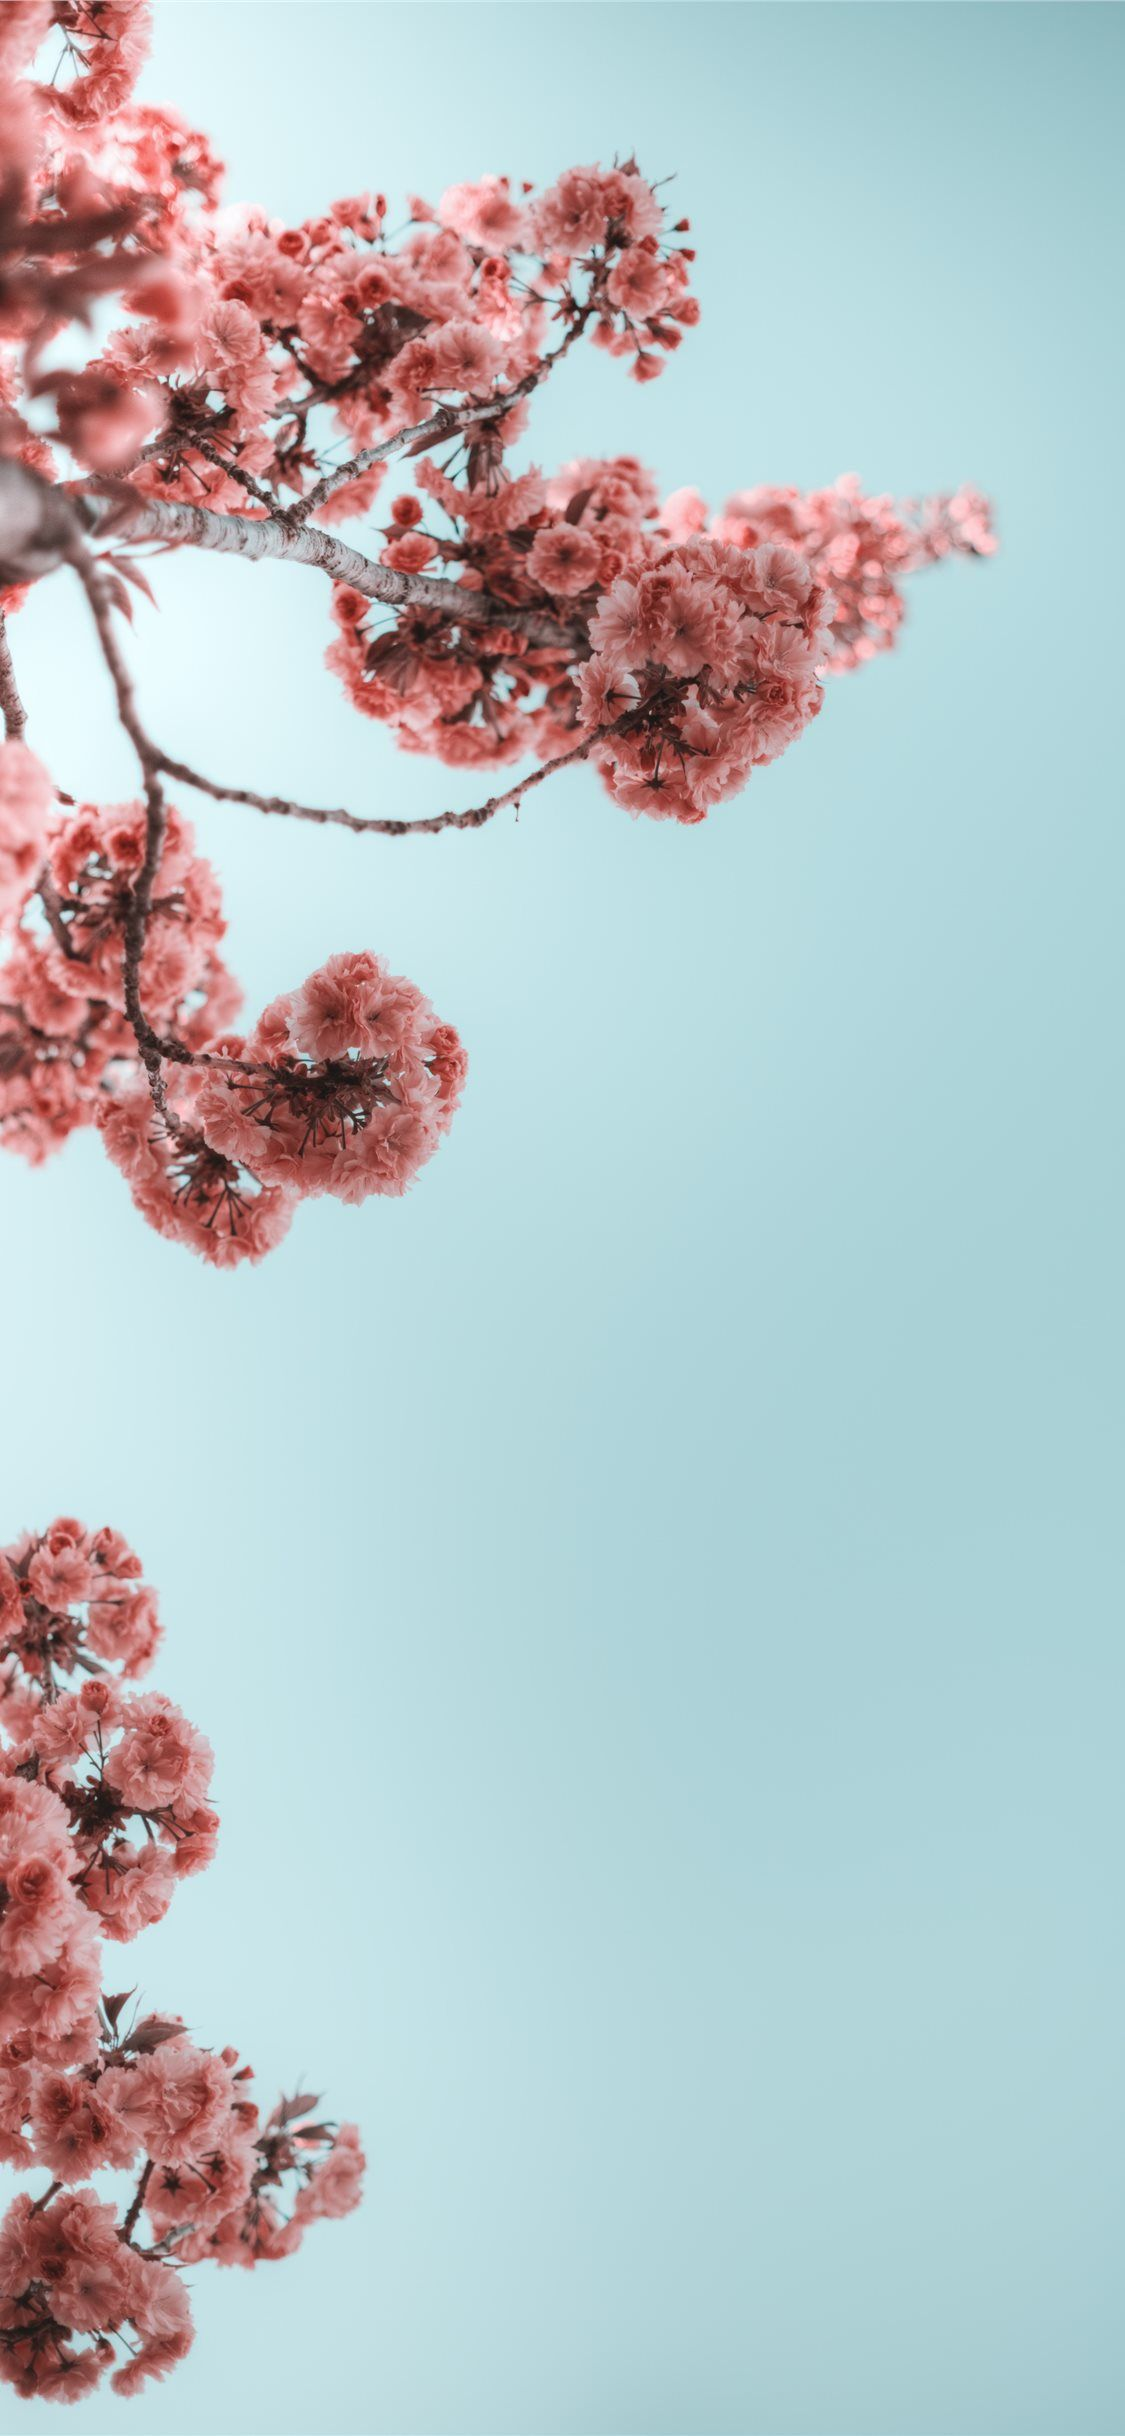 Selective Photograph Of Branches With Flower Flower Cherryblossom Tree Summer Sprin In Flower Iphone Wallpaper Wallpaper Iphone Summer Cute Flower Wallpapers